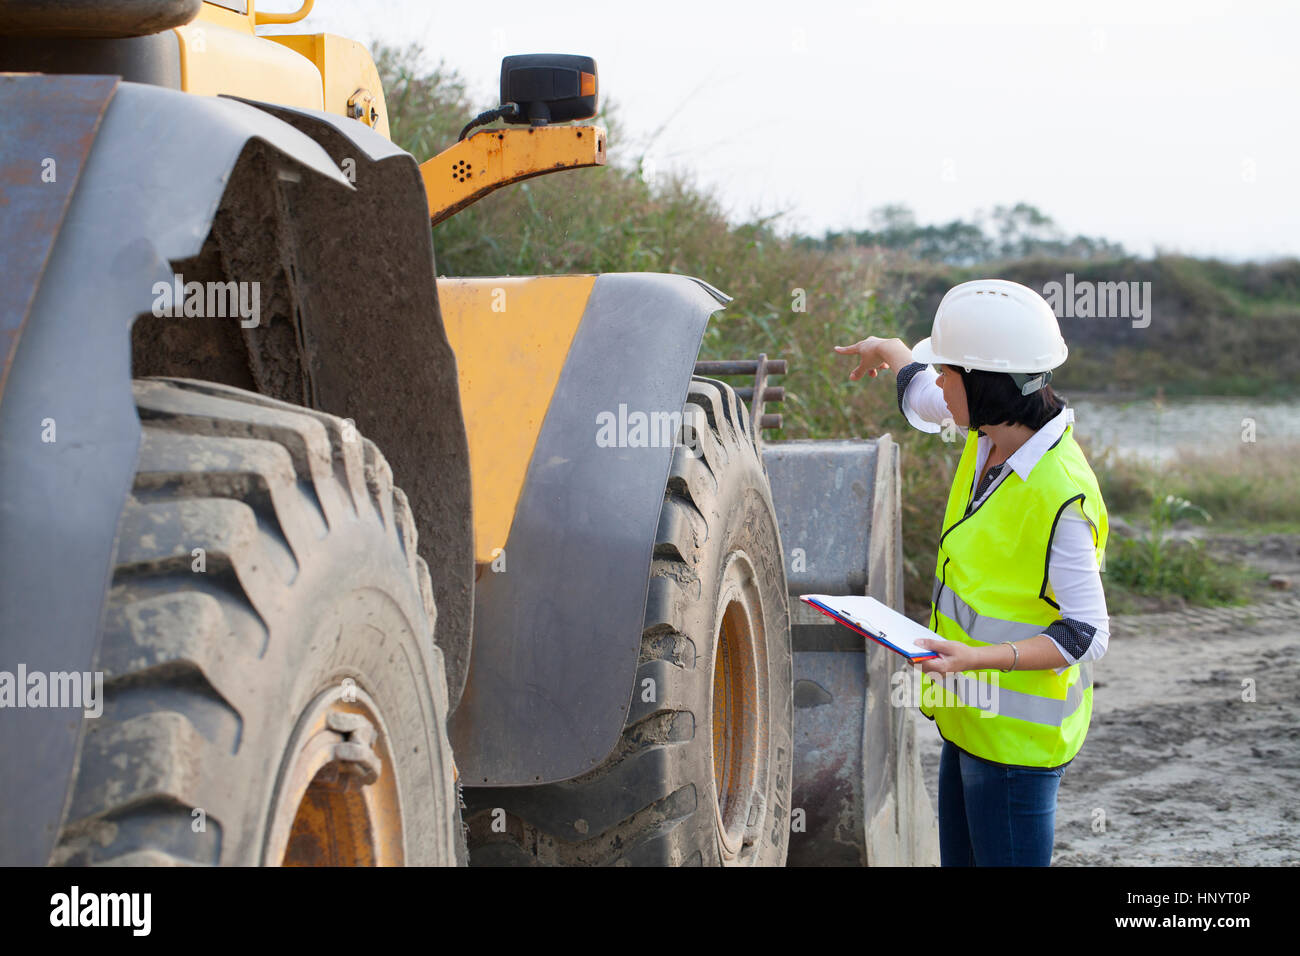 Woman engineer on a construction site, Selective focus and small depth of field - Stock Image